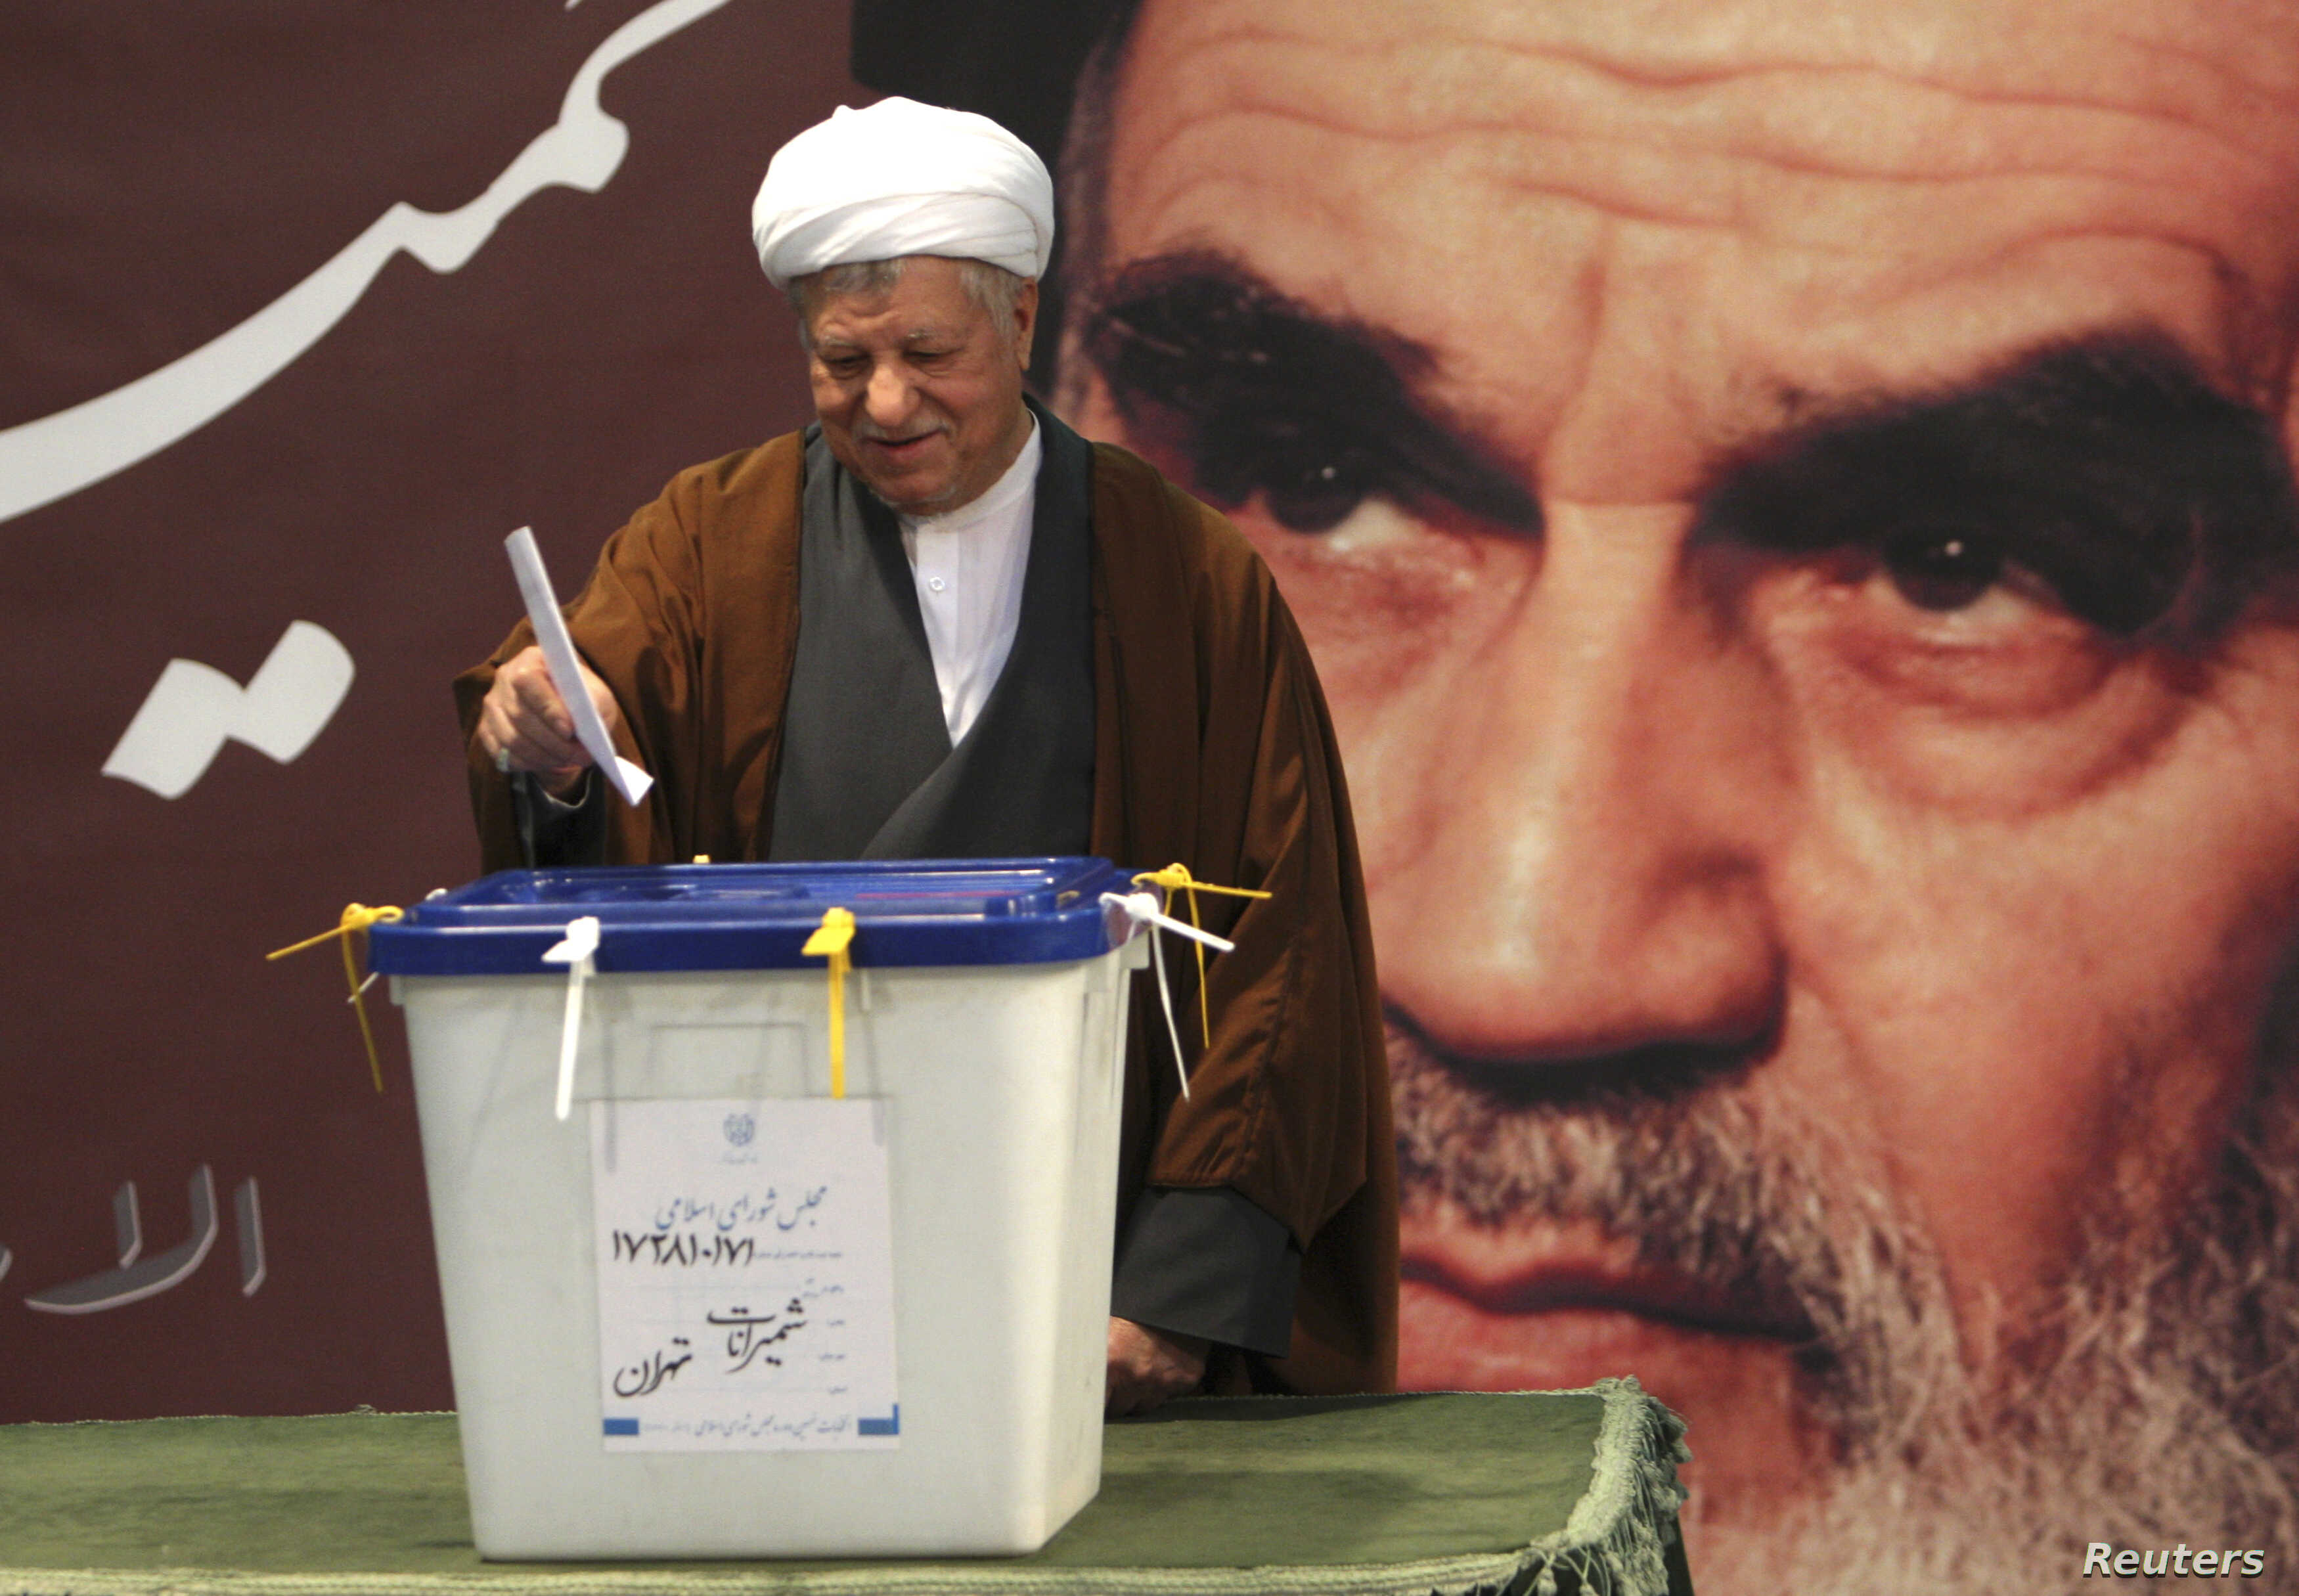 Former Iranian President Ali Akbar Hashemi Rafsanjani is seen casting his ballot in parliamentary elections in Tehran in this March 2, 2012, file photo.